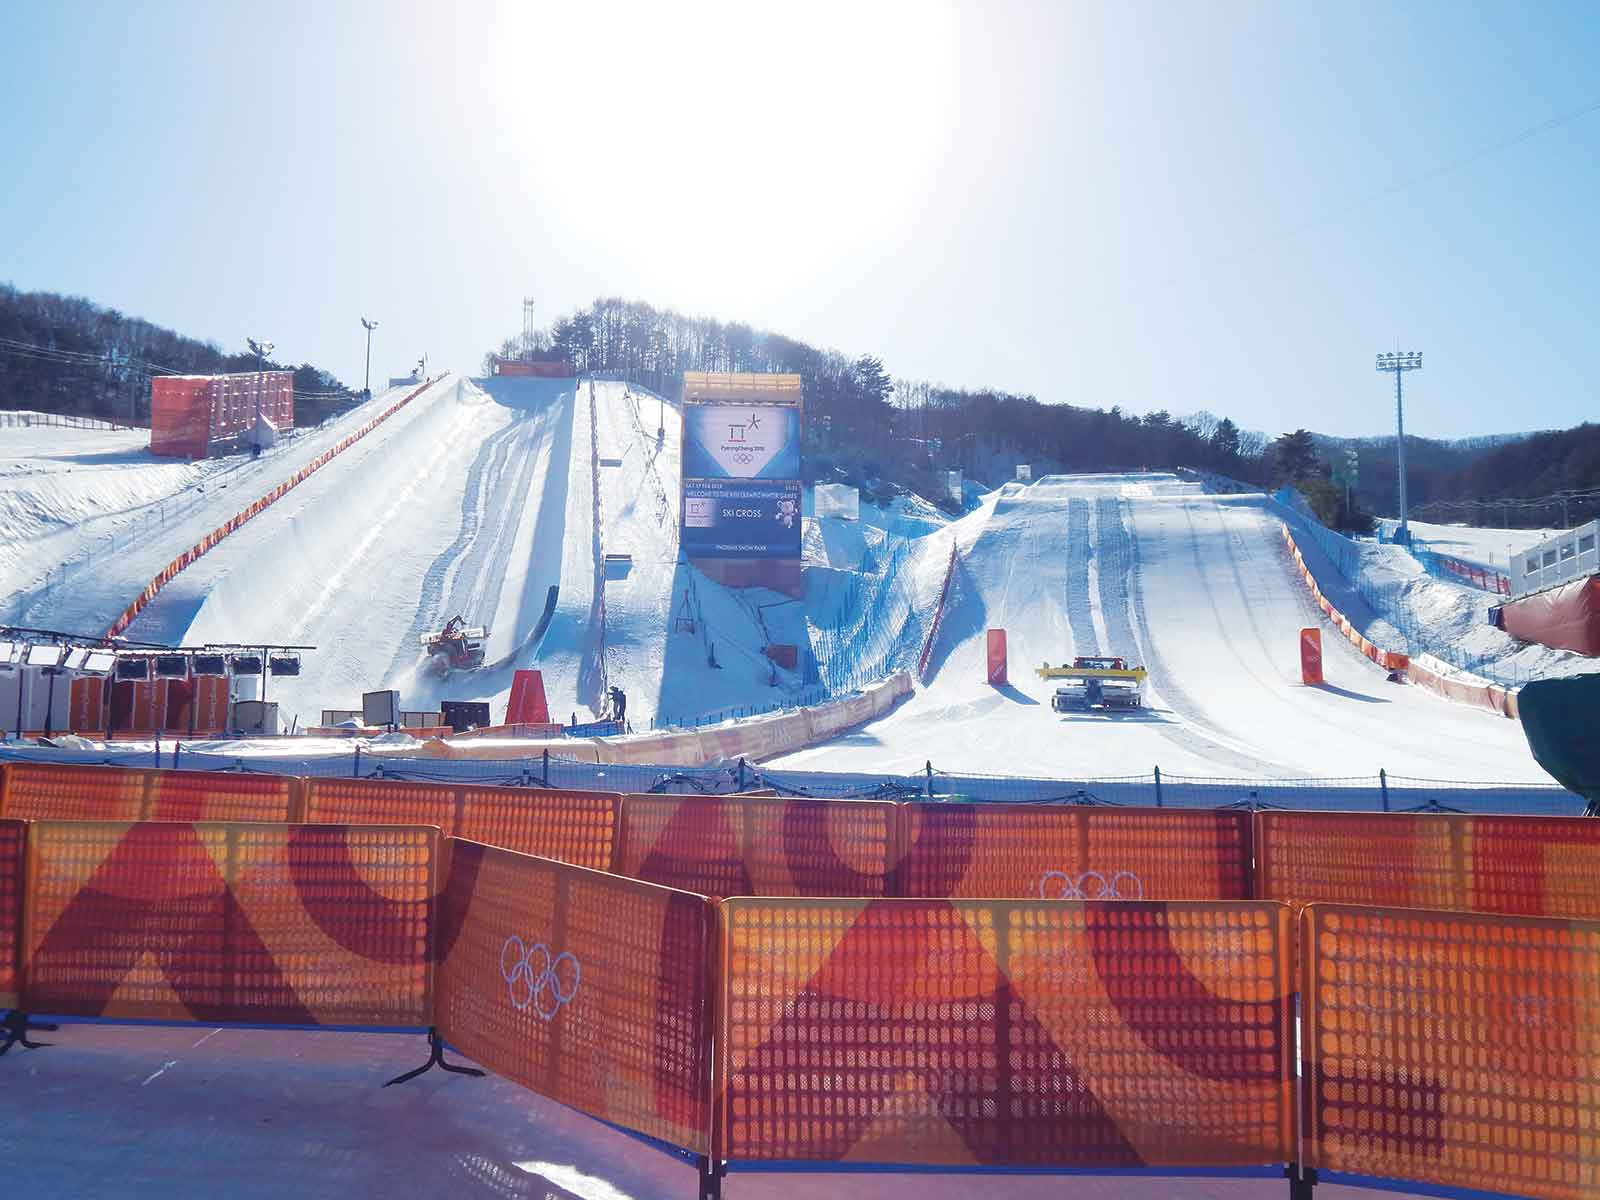 A view from the finish-line area of Jake and his team's super-pipe and boarder-cross venues at the 2018 Olympics in South Korea.